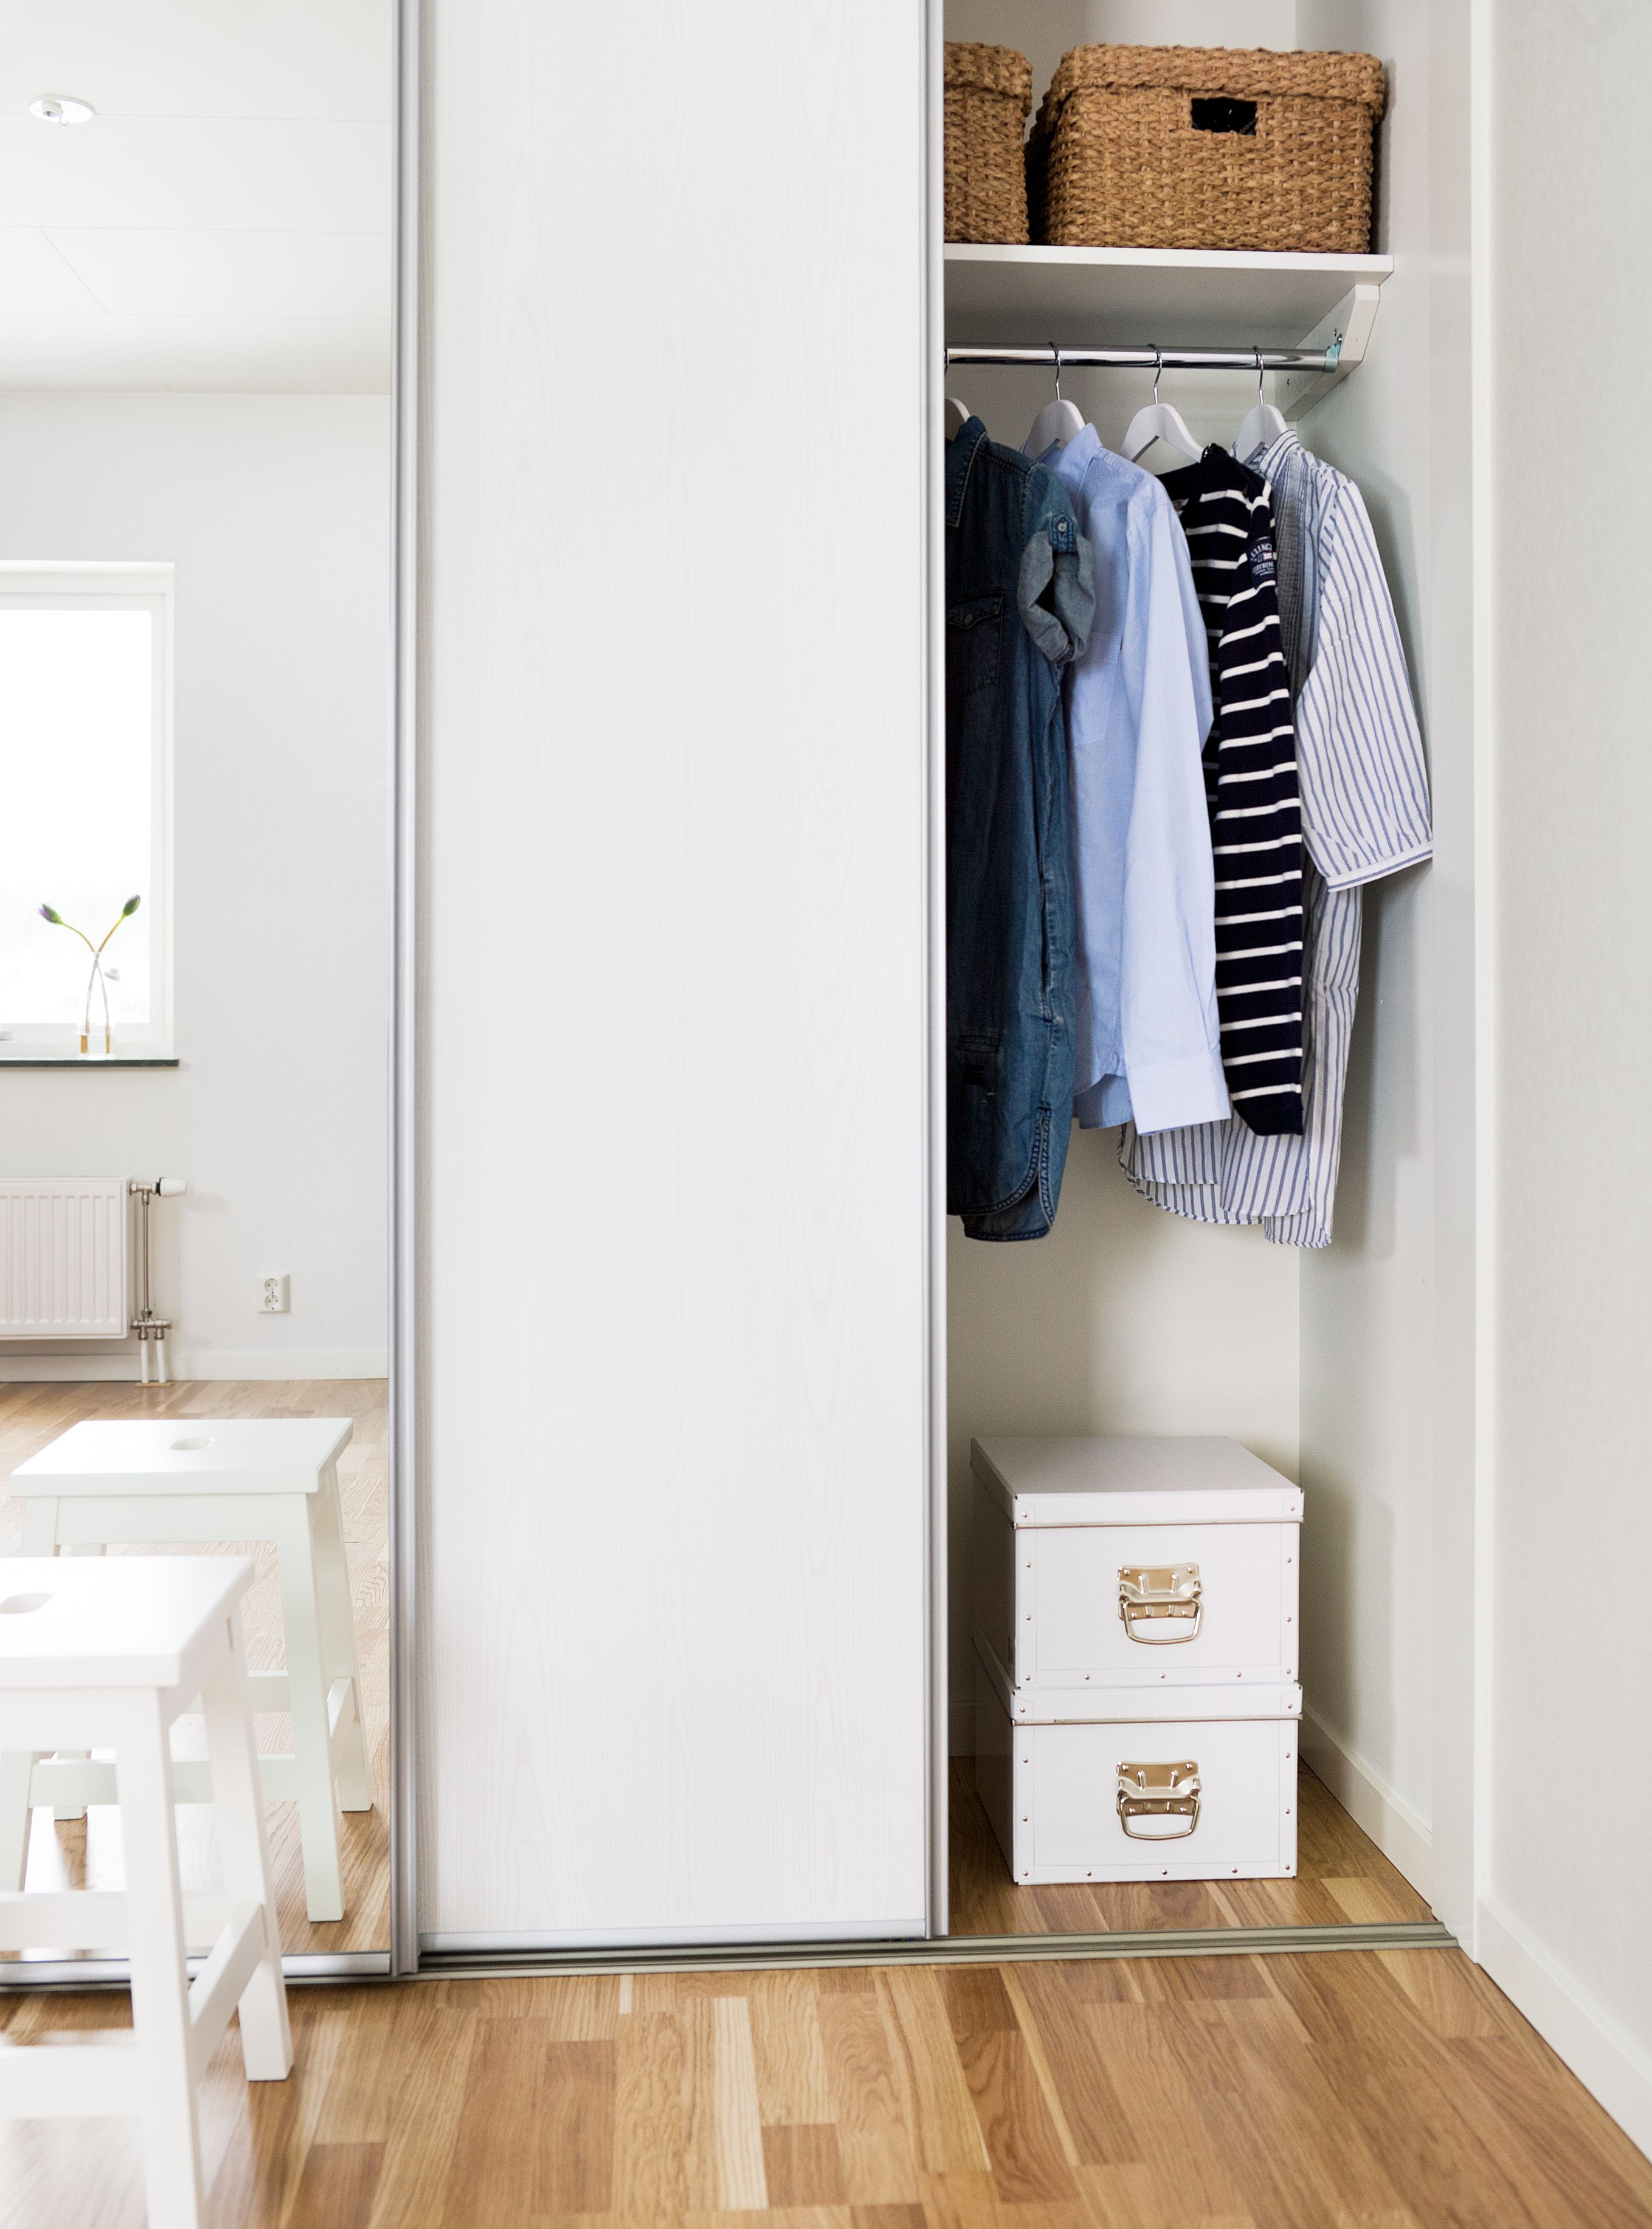 Permalink to Beautiful Small Closet organization Pictures